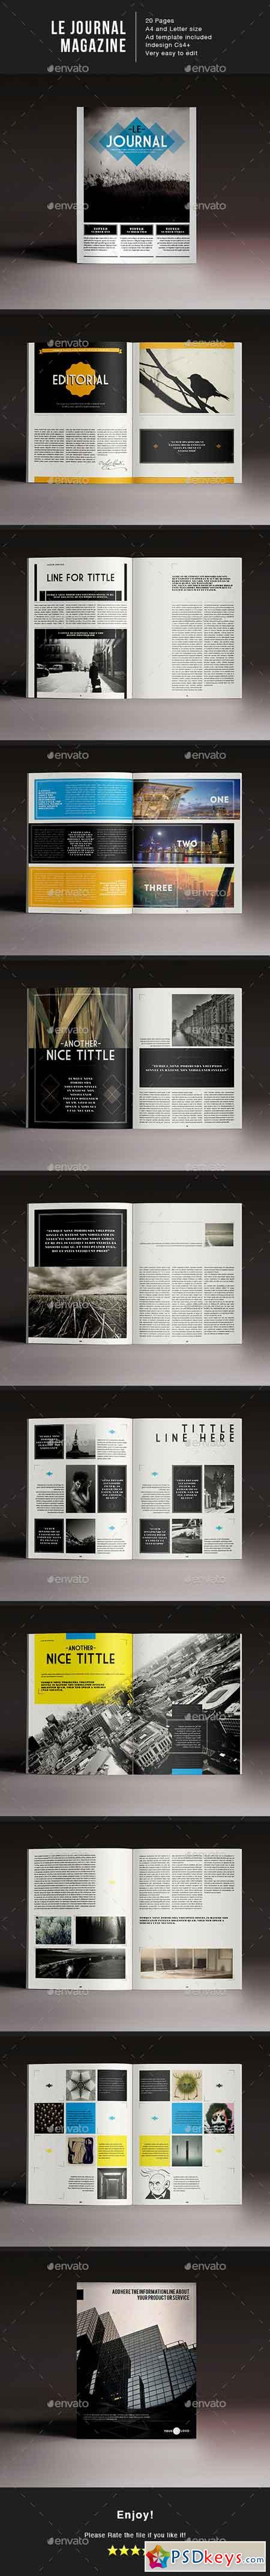 Le Journal Magazine Indesign Template 14445296